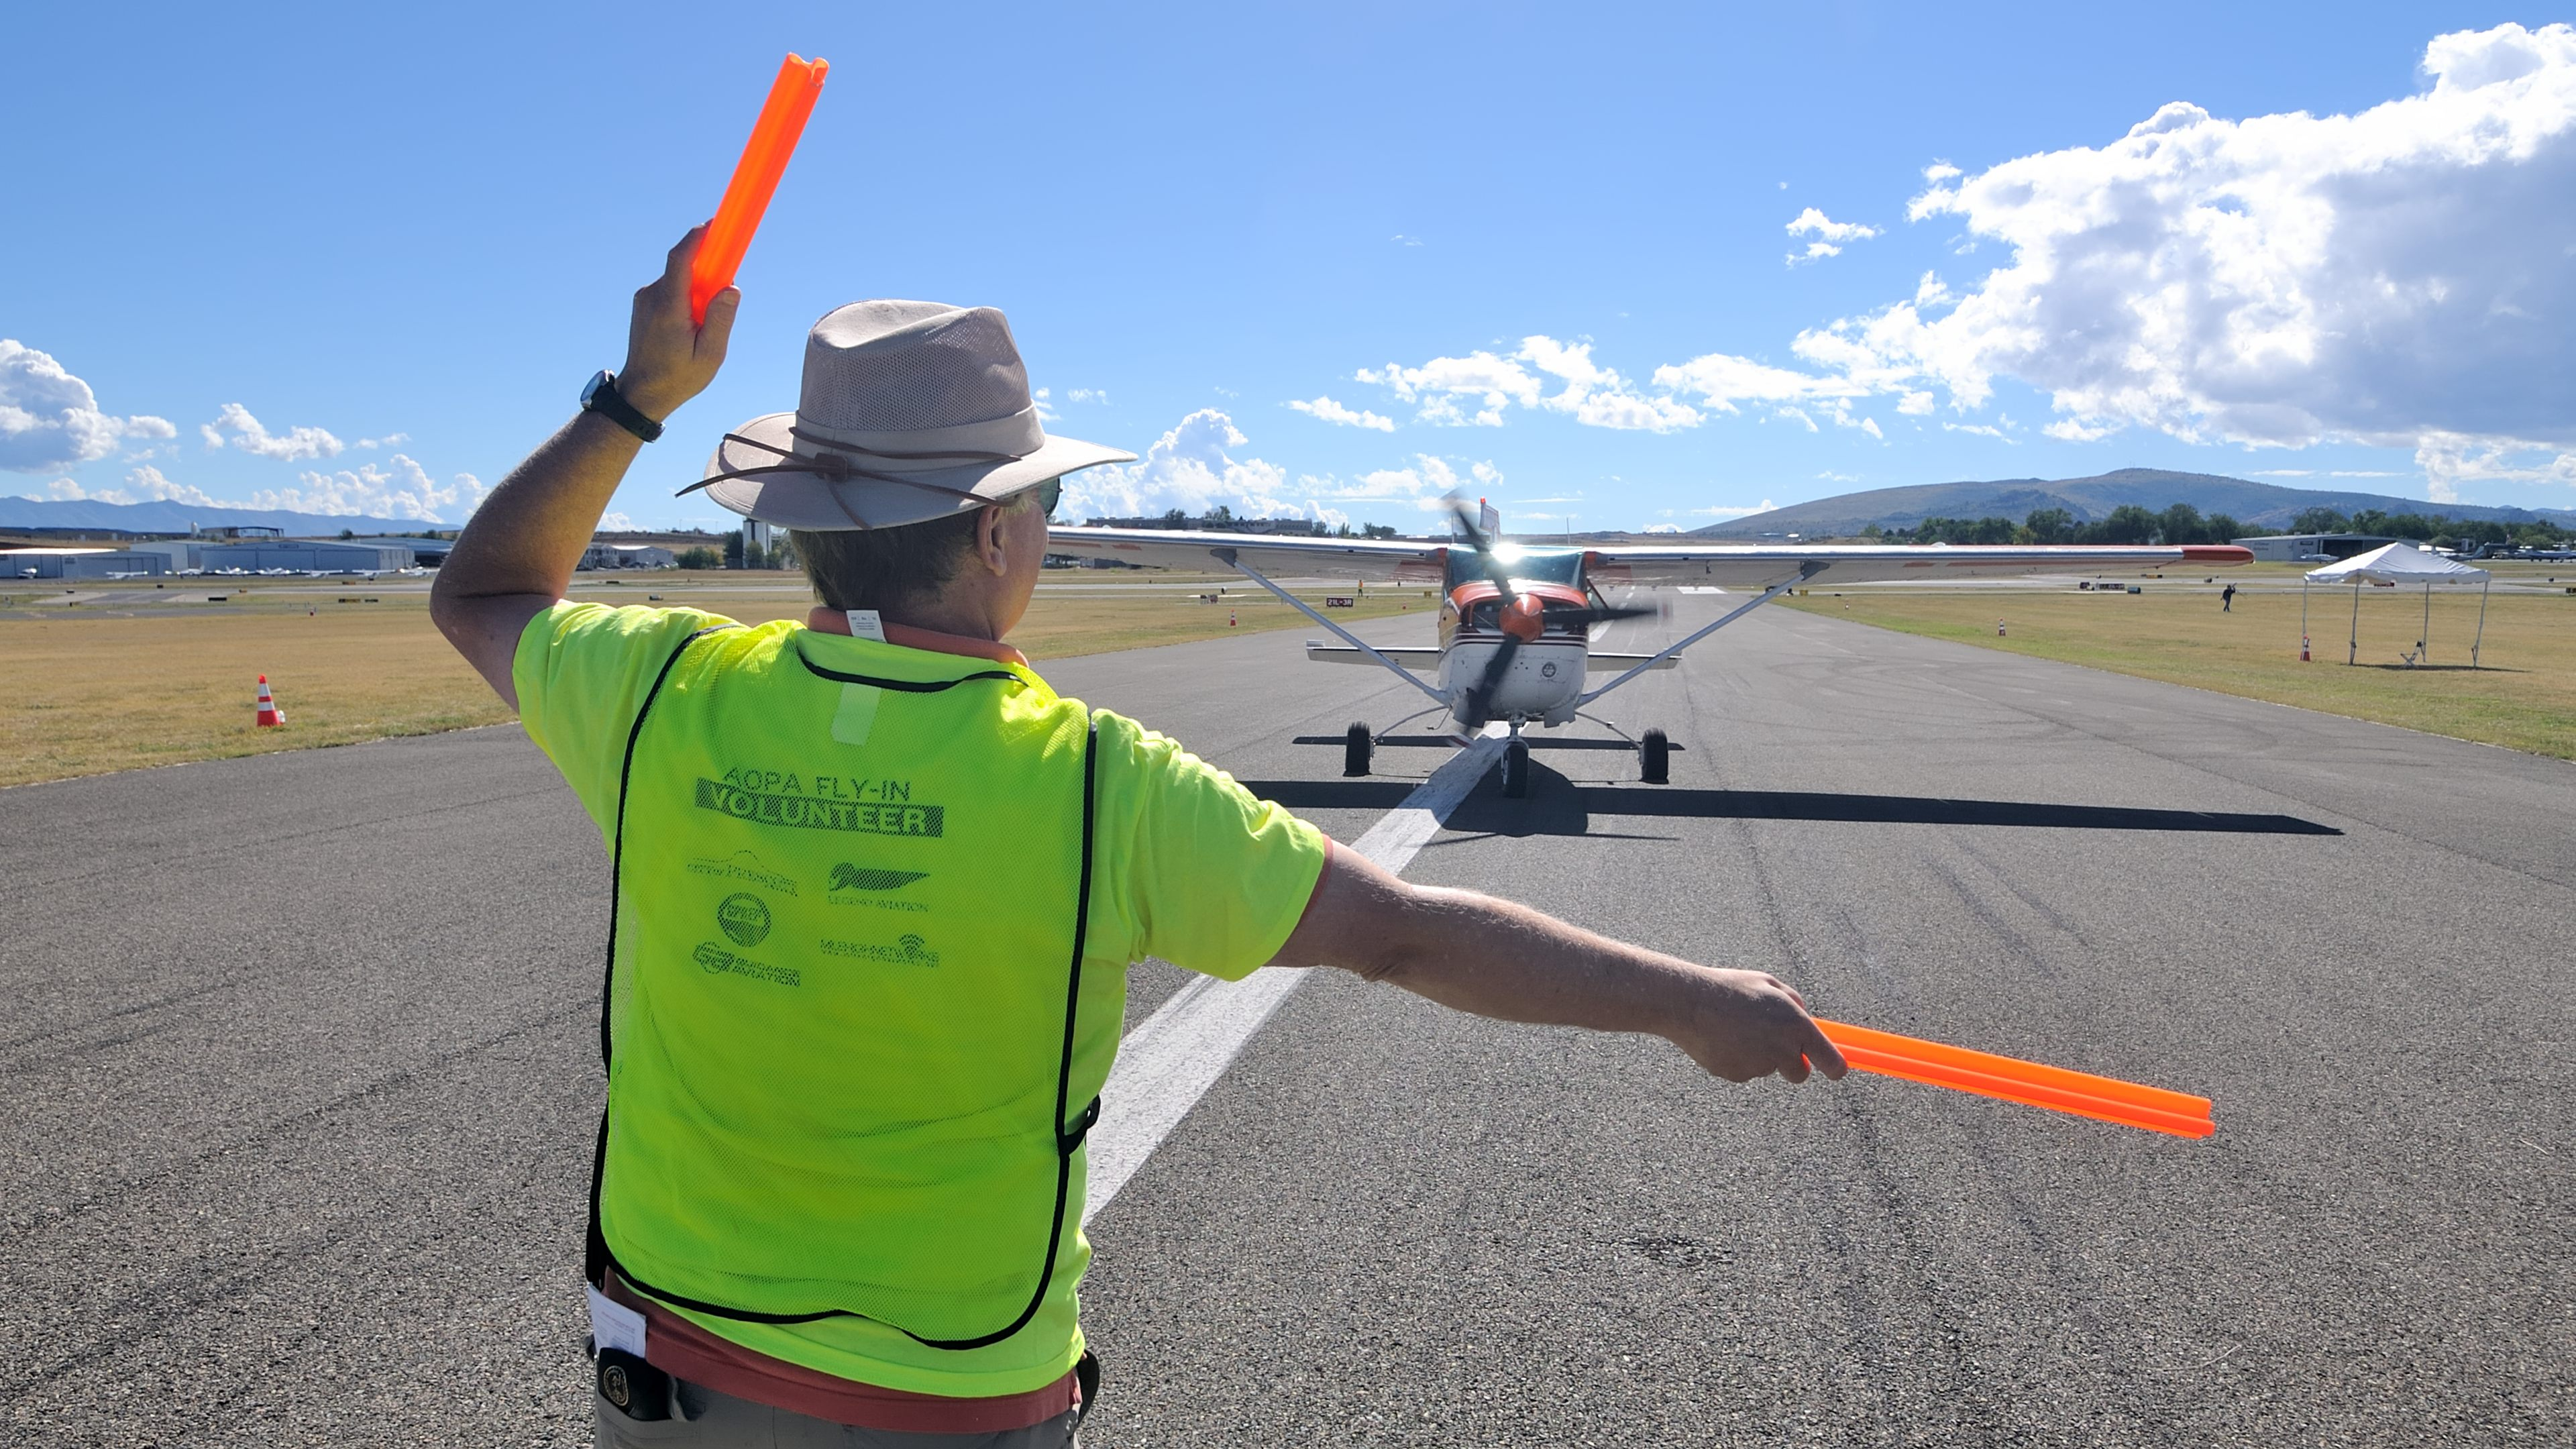 Volunteer Jerry McMillan of Prescott, Arizona, marshals an aircraft into the camping area at AOPA's Prescott Fly-In. Photo by Mike Collins.